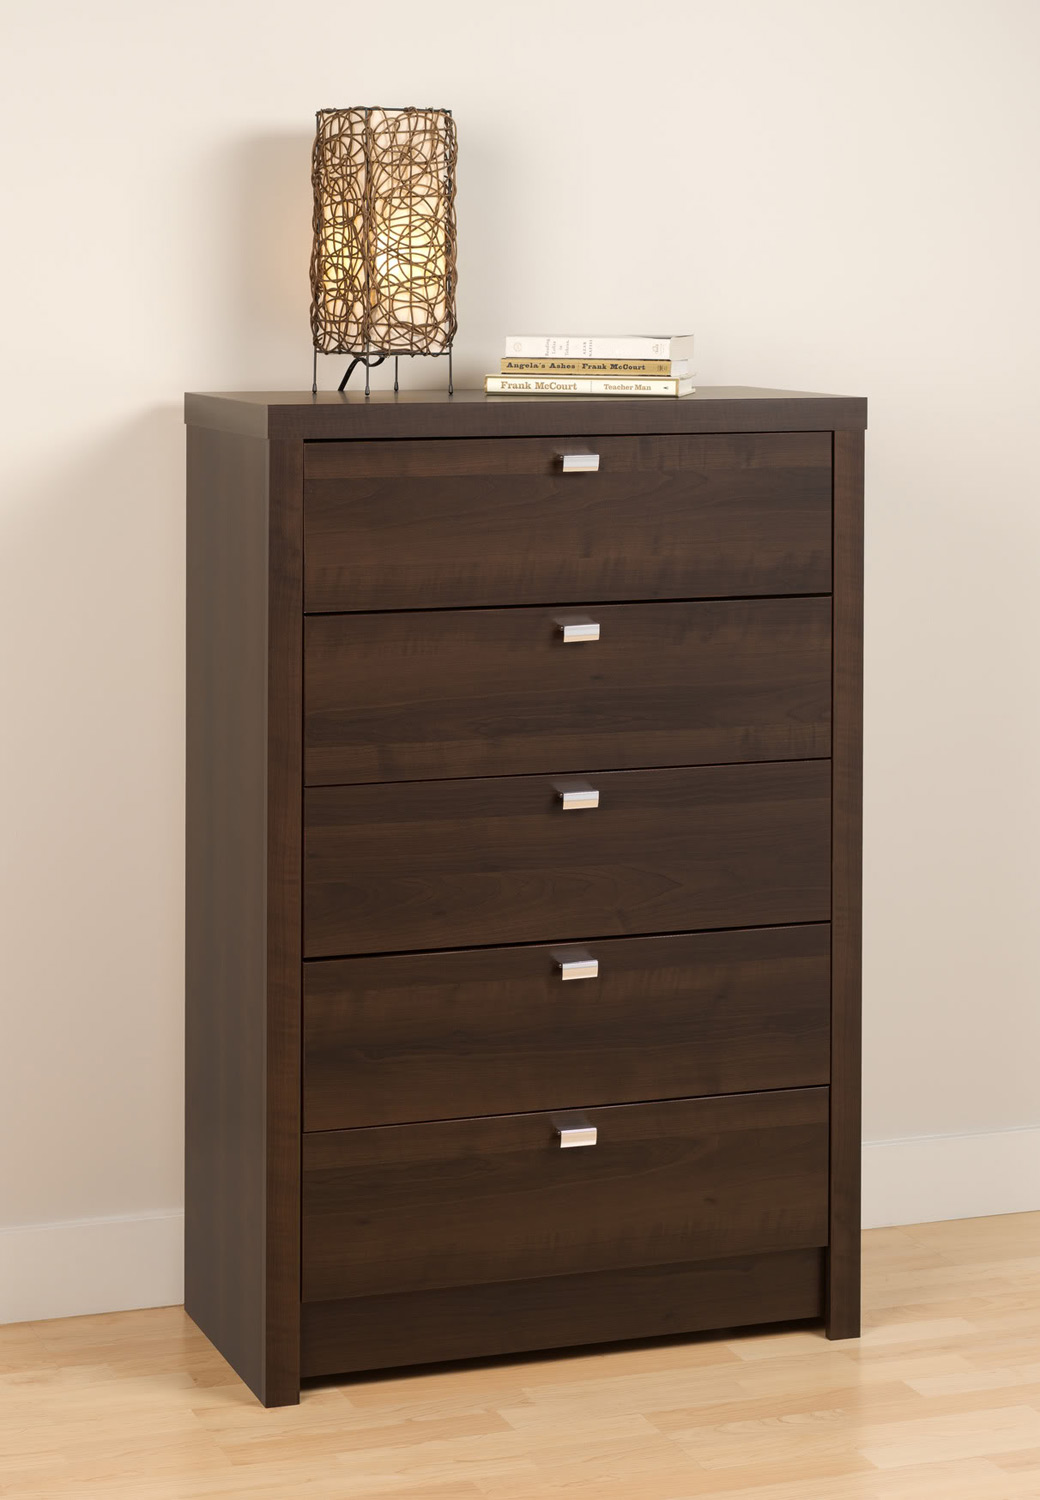 Prepac Series 9 5-Drawer Chest - Espresso